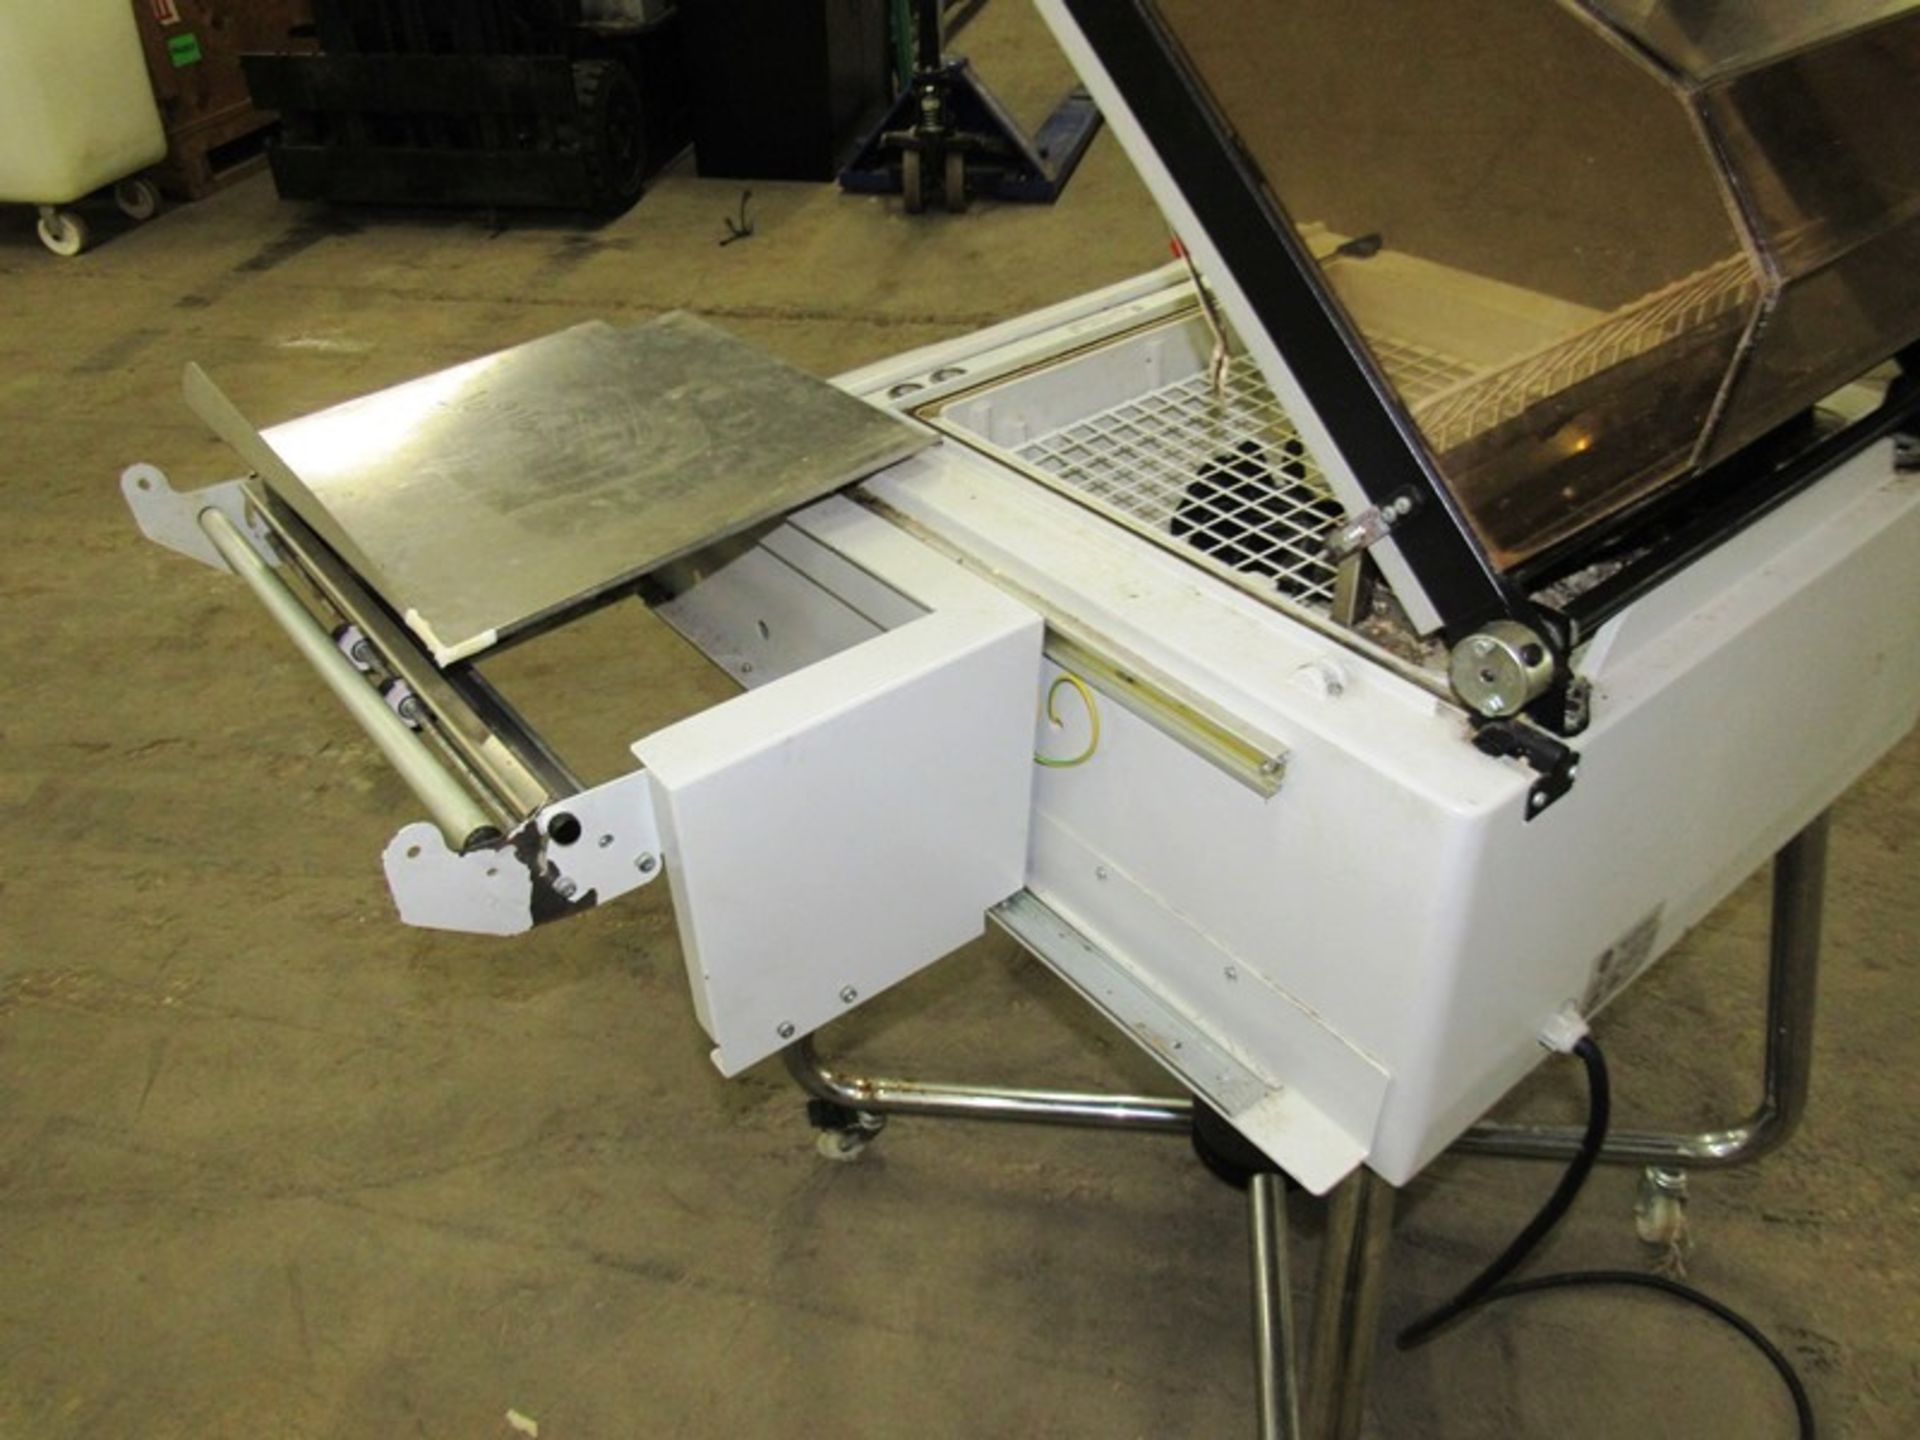 """Multipak-Torre Mdl Galaxy Shrink Wrap Machine, 17 1/2"""" W X 14"""" L X 8"""" H sealing dimensions, up to - Image 4 of 6"""